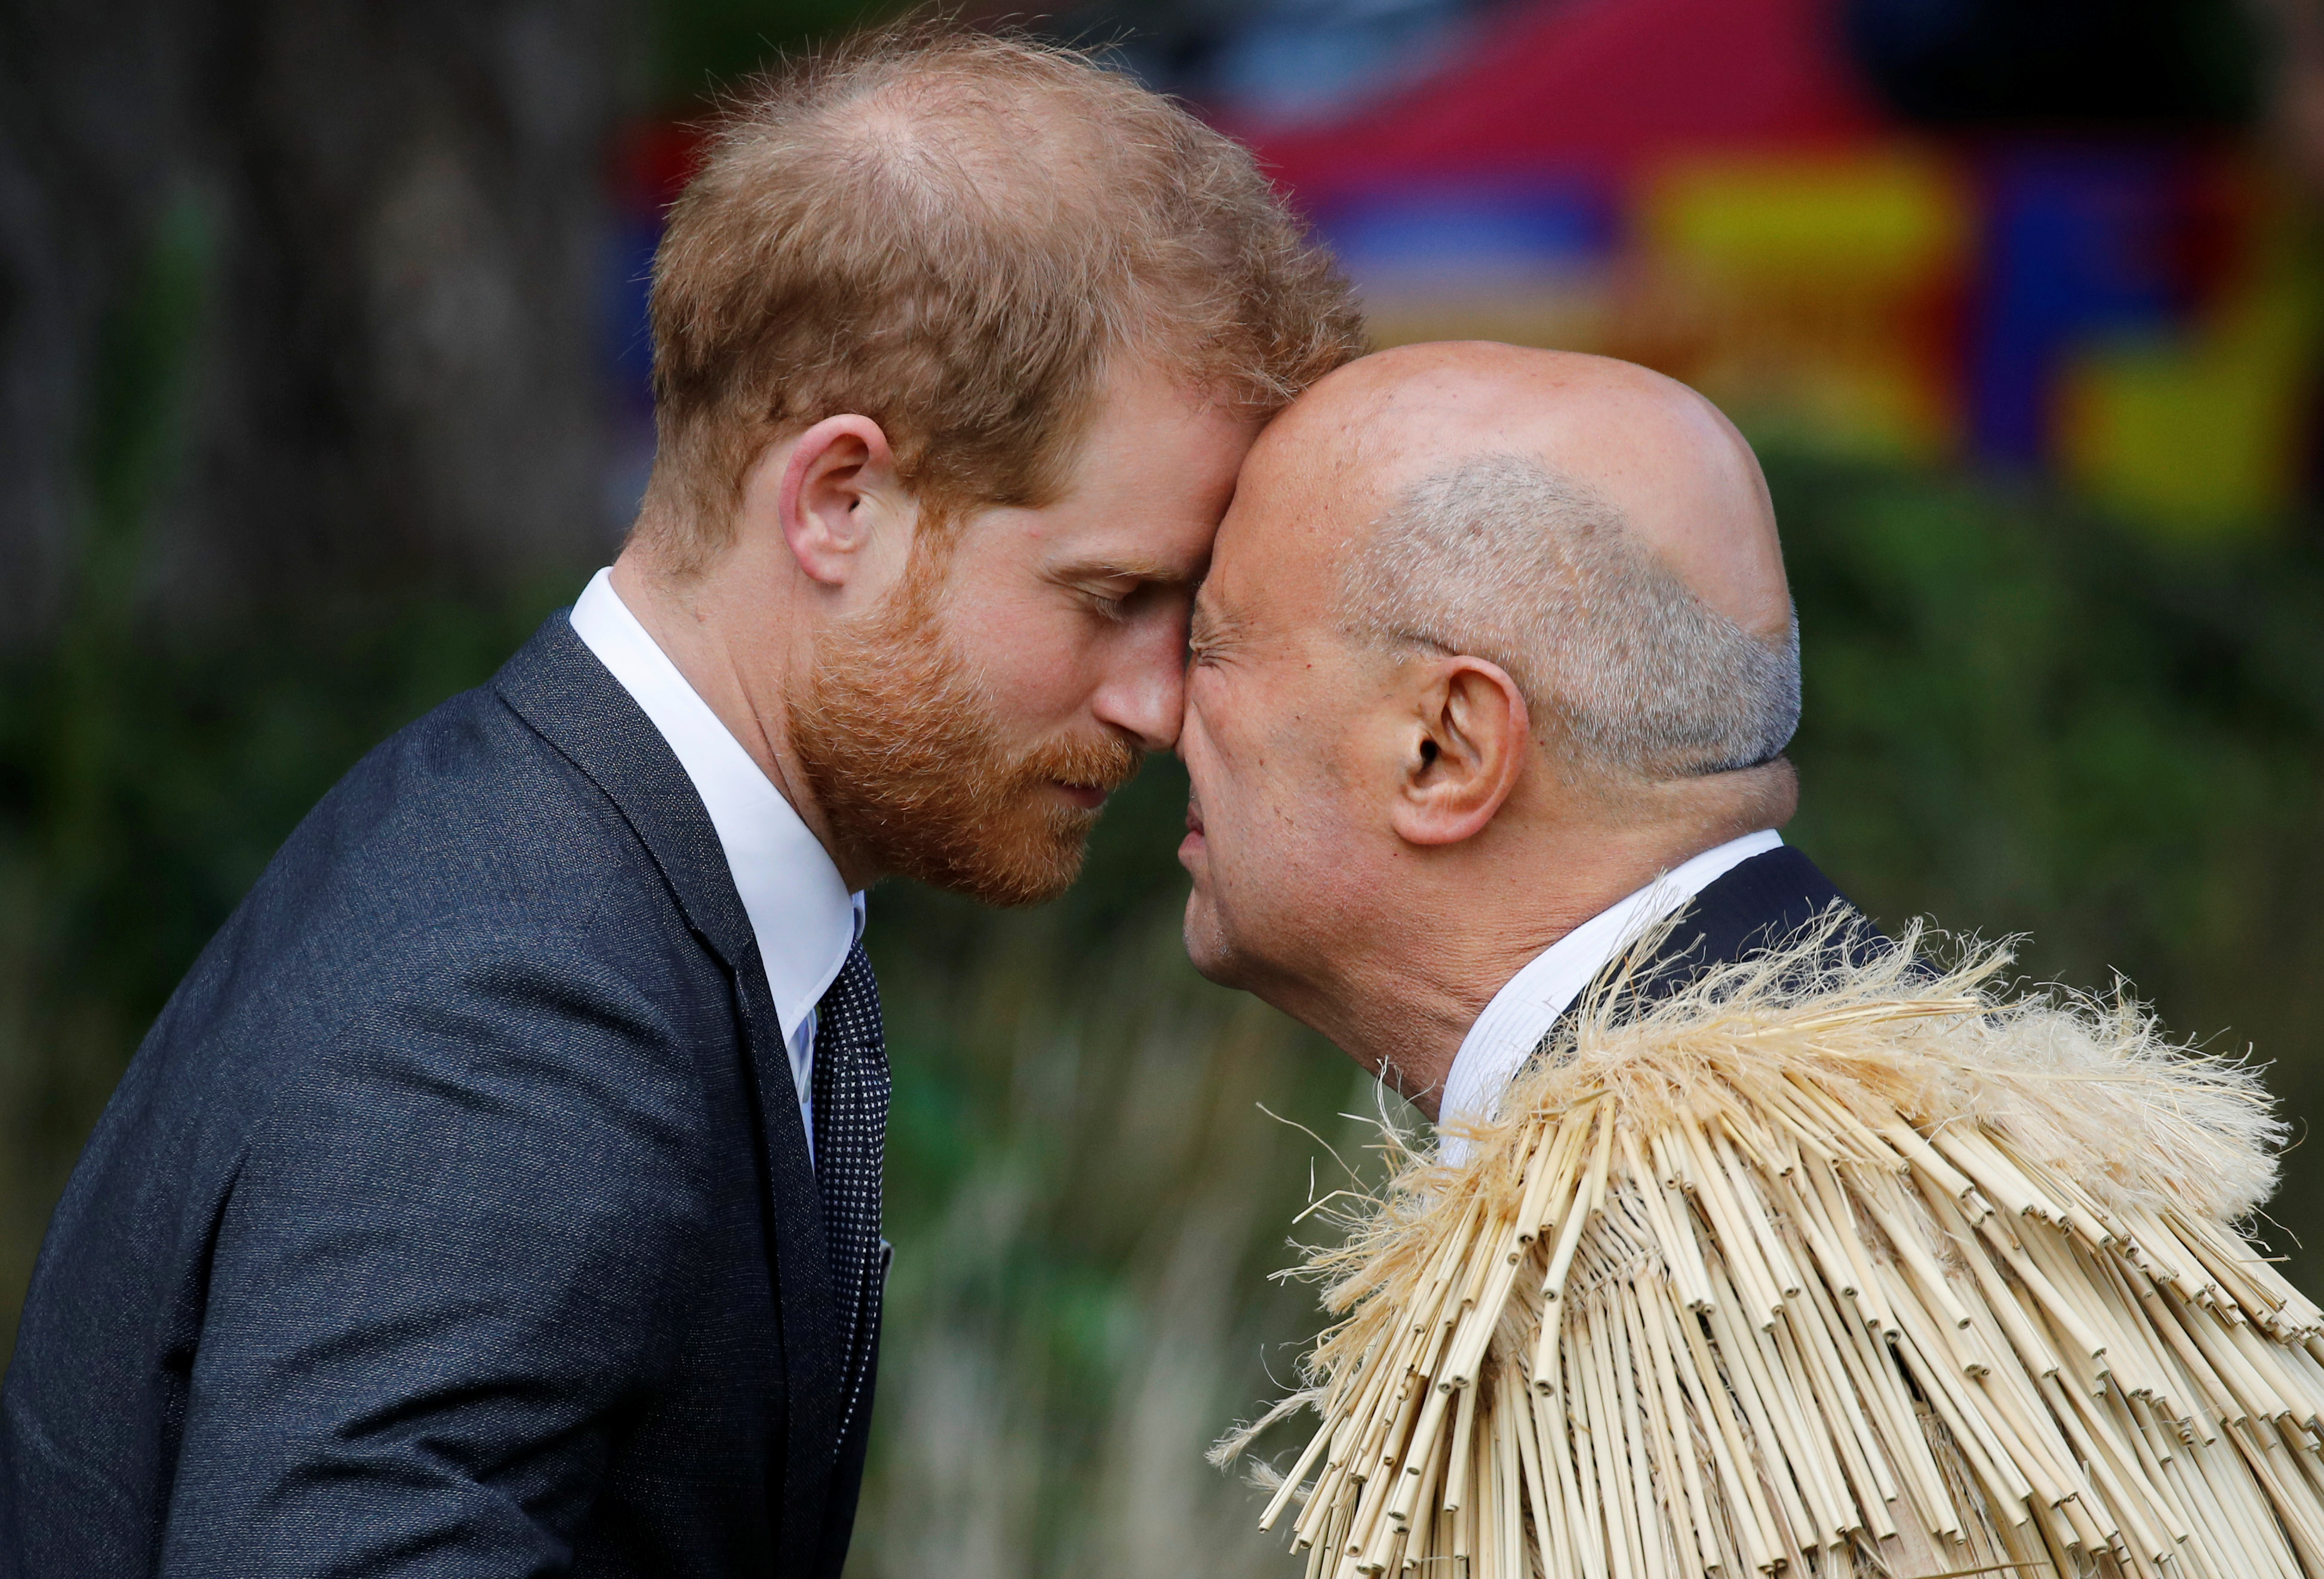 Prince Harry exchanges a hongi during a welcome ceremony at Government House in Wellington, New Zealand, October 28, 2018. REUTERS/Phil Noble